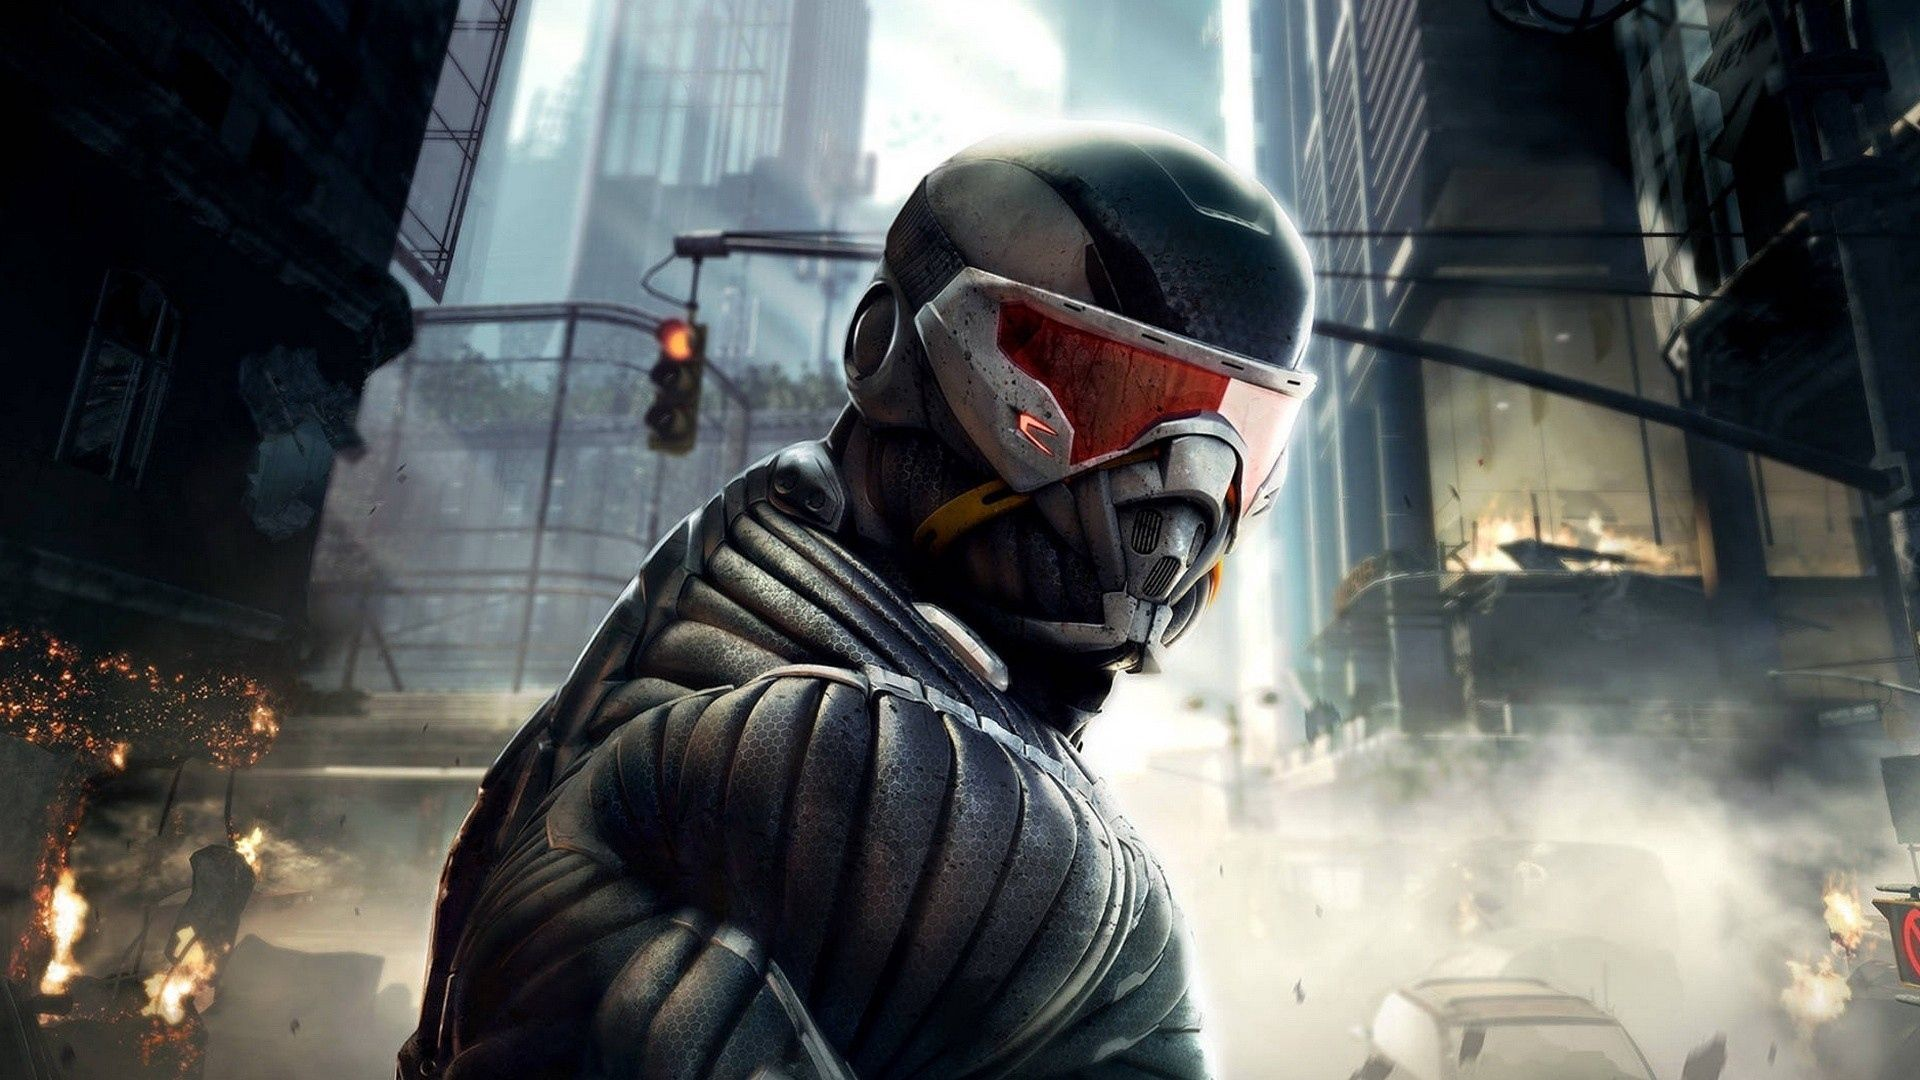 Crysis 2 Pictures On The Avu